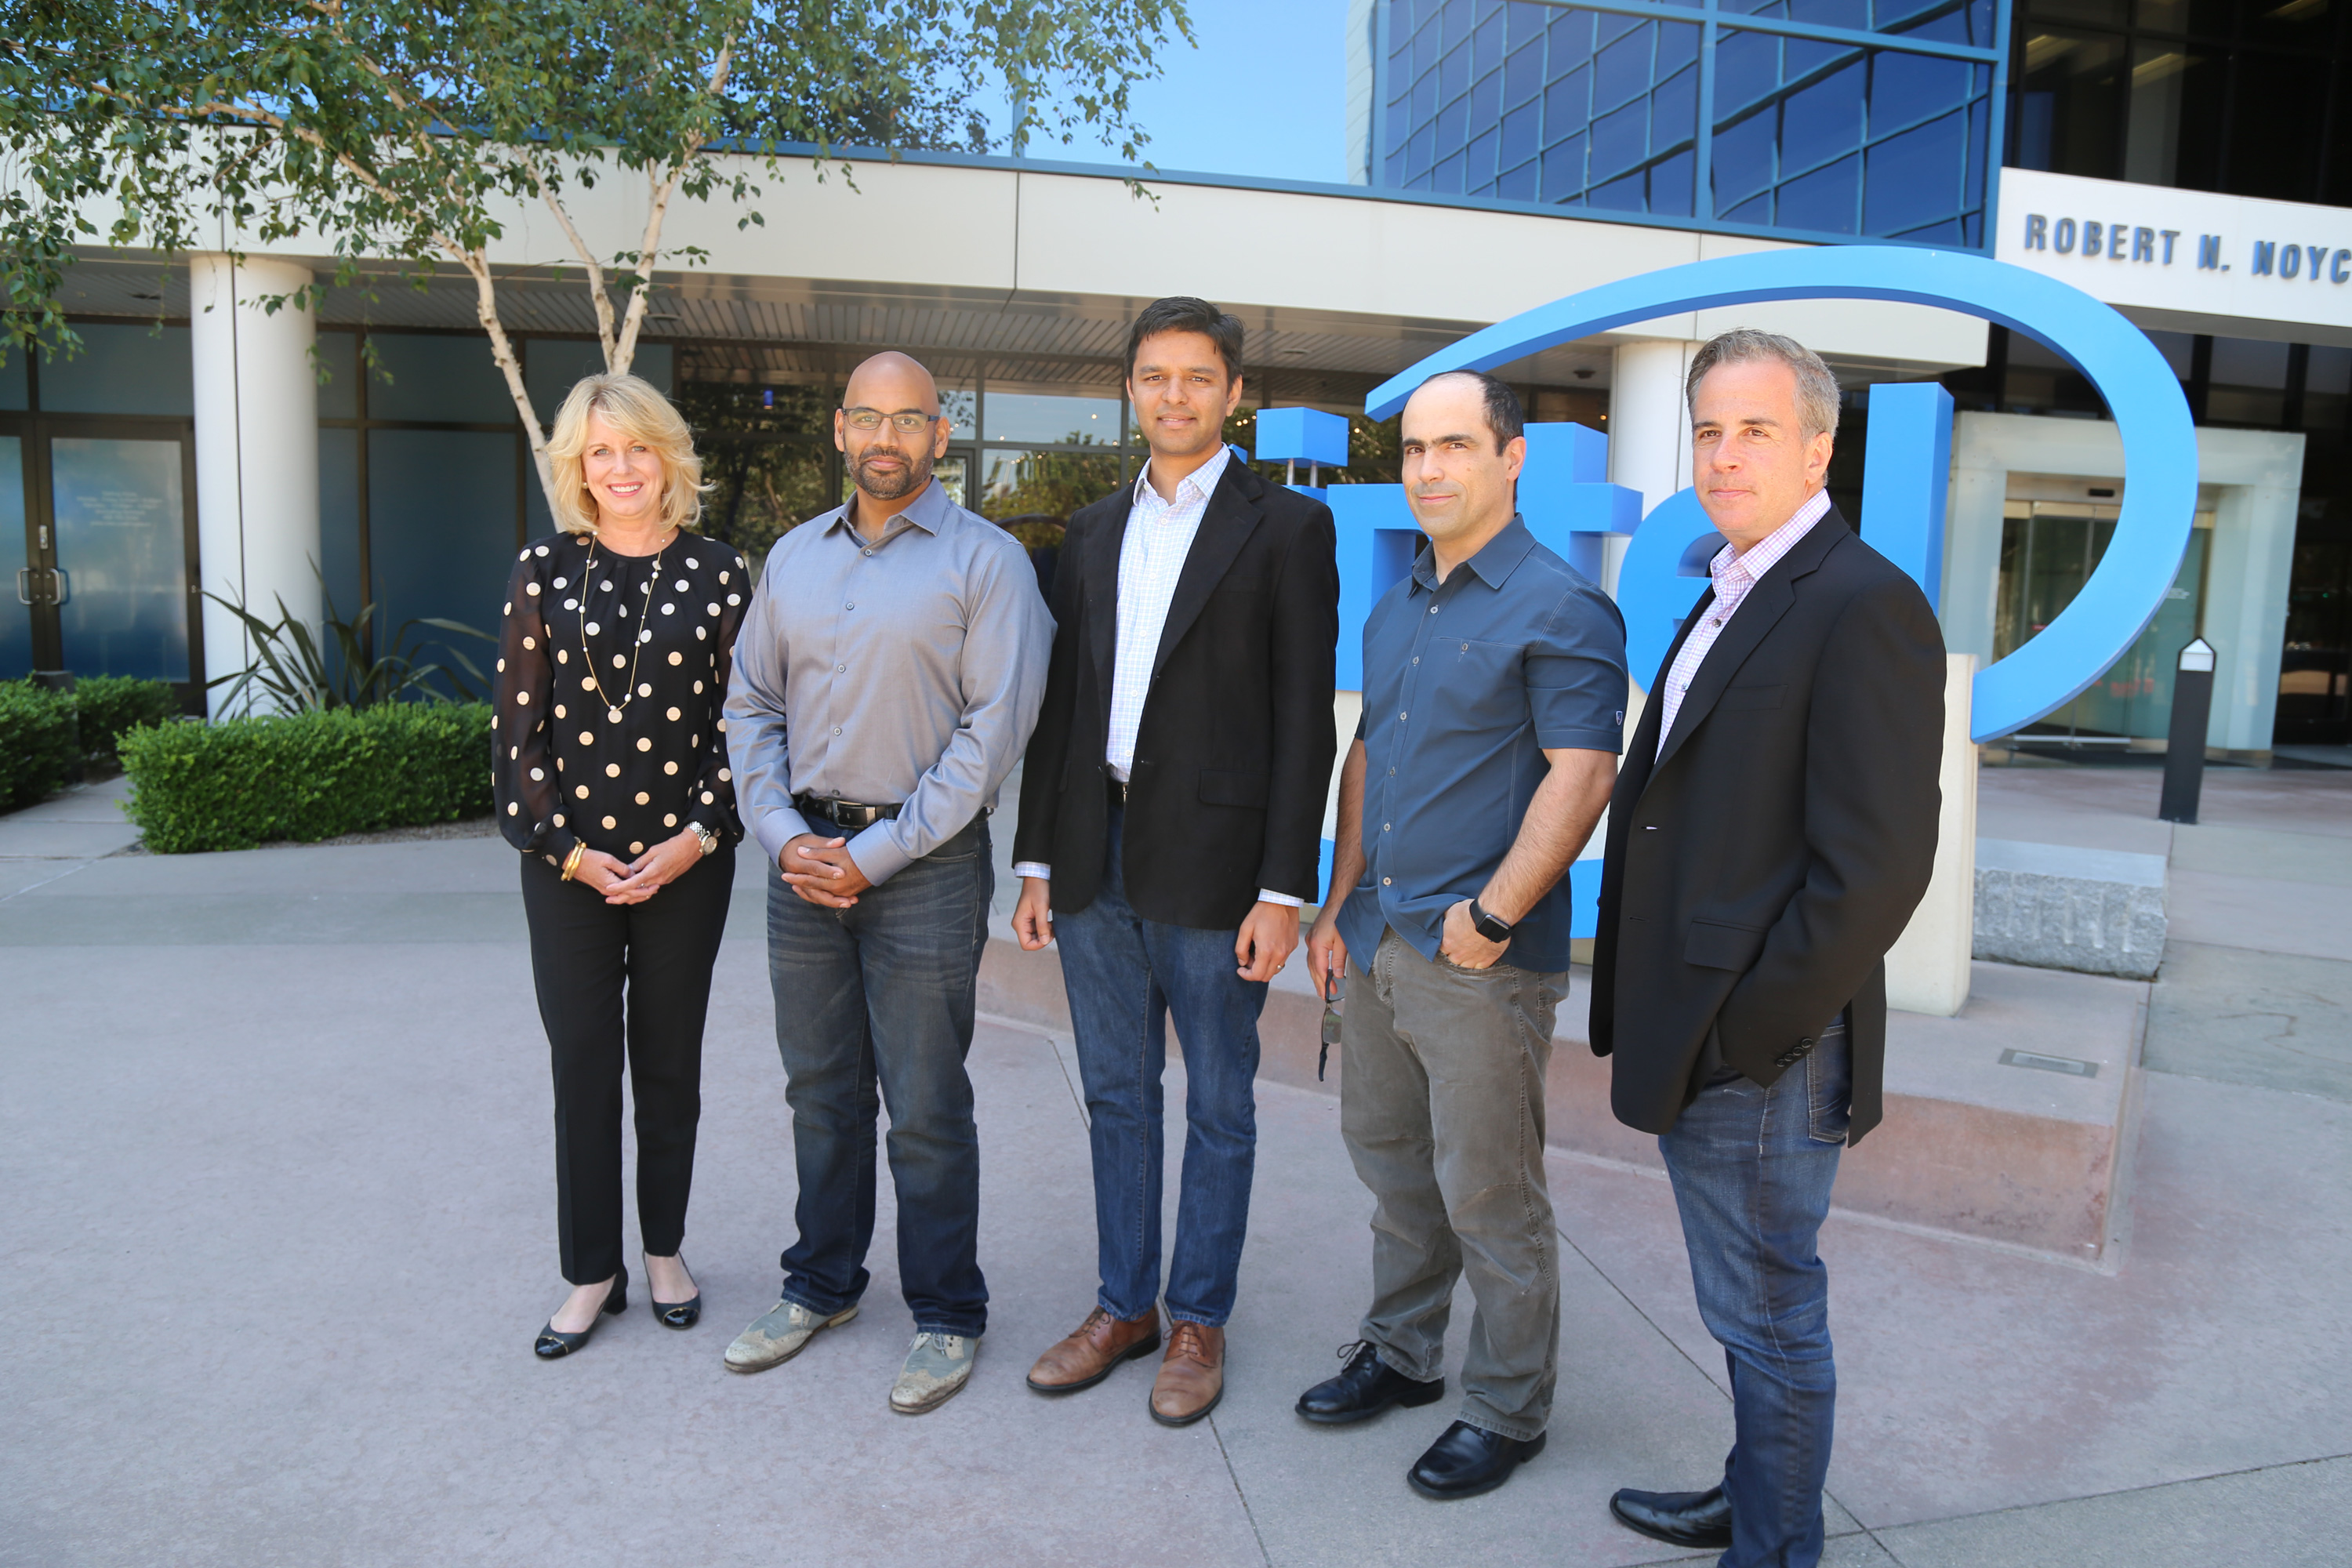 Intel's Diane Bryant with Nervana's co-founders Naveen Rao, Arjun Bansal, Amir Khosrowshaki and Intel vice president Jason Waxman (Source: Intel)